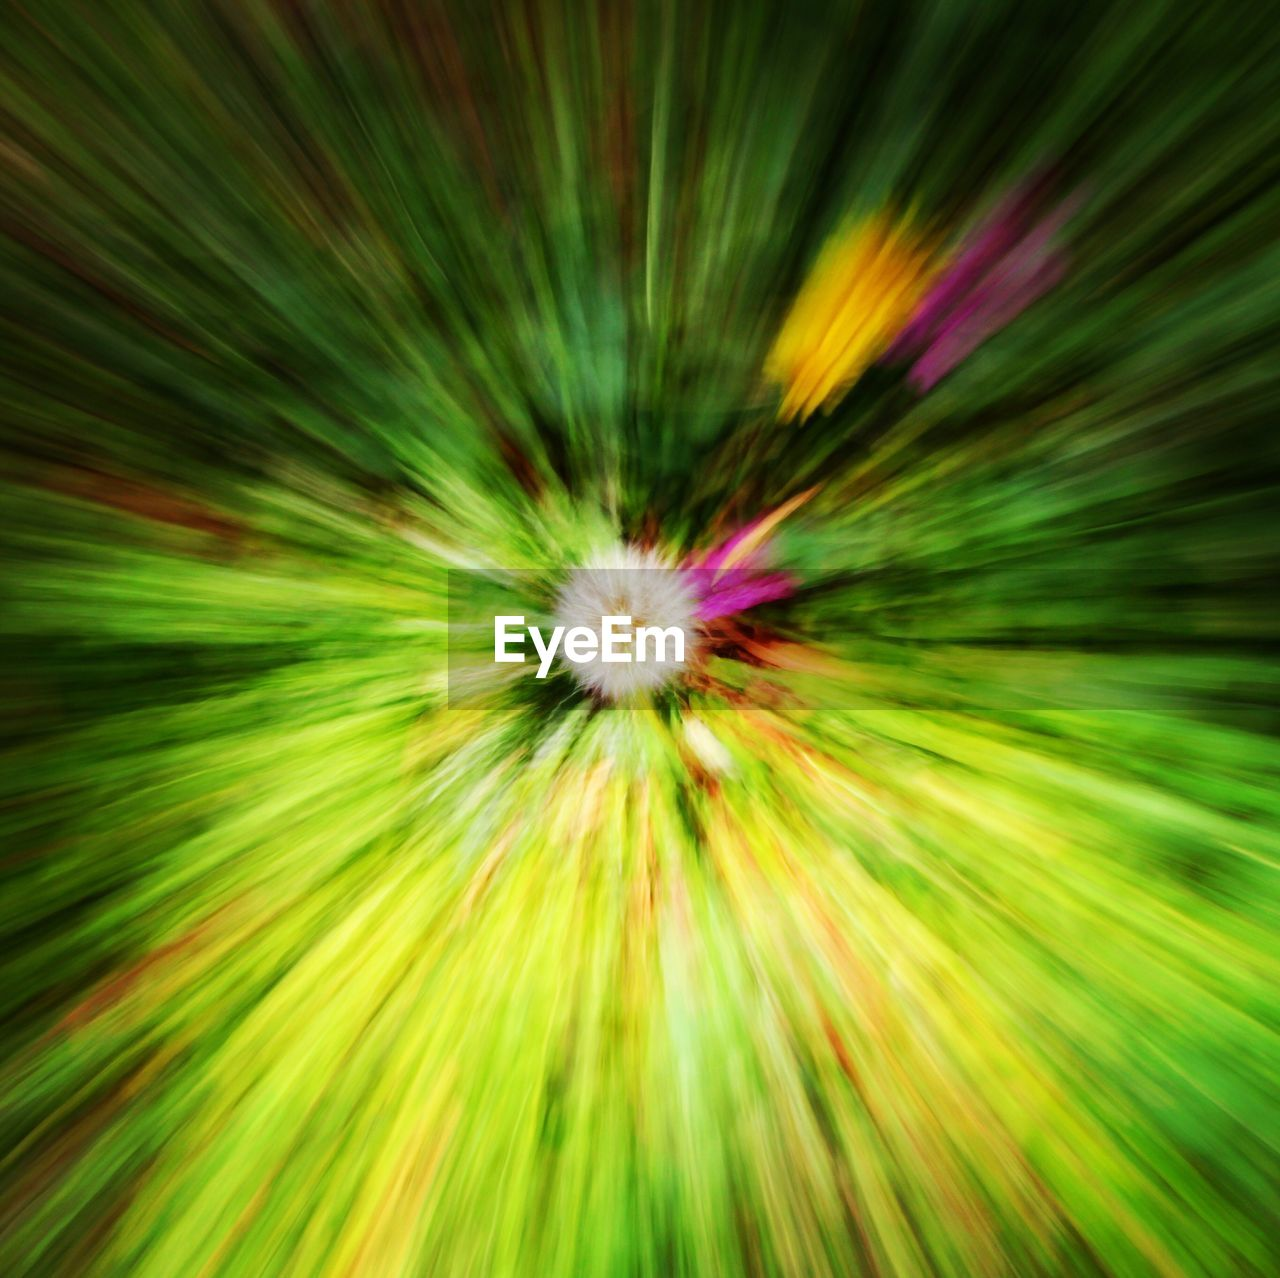 backgrounds, abstract, full frame, motion, plant, flower, no people, vibrant color, yellow, flowering plant, multi colored, freshness, blurred motion, growth, beauty in nature, green color, nature, close-up, exploding, fragility, abstract backgrounds, bright, flower head, textured effect